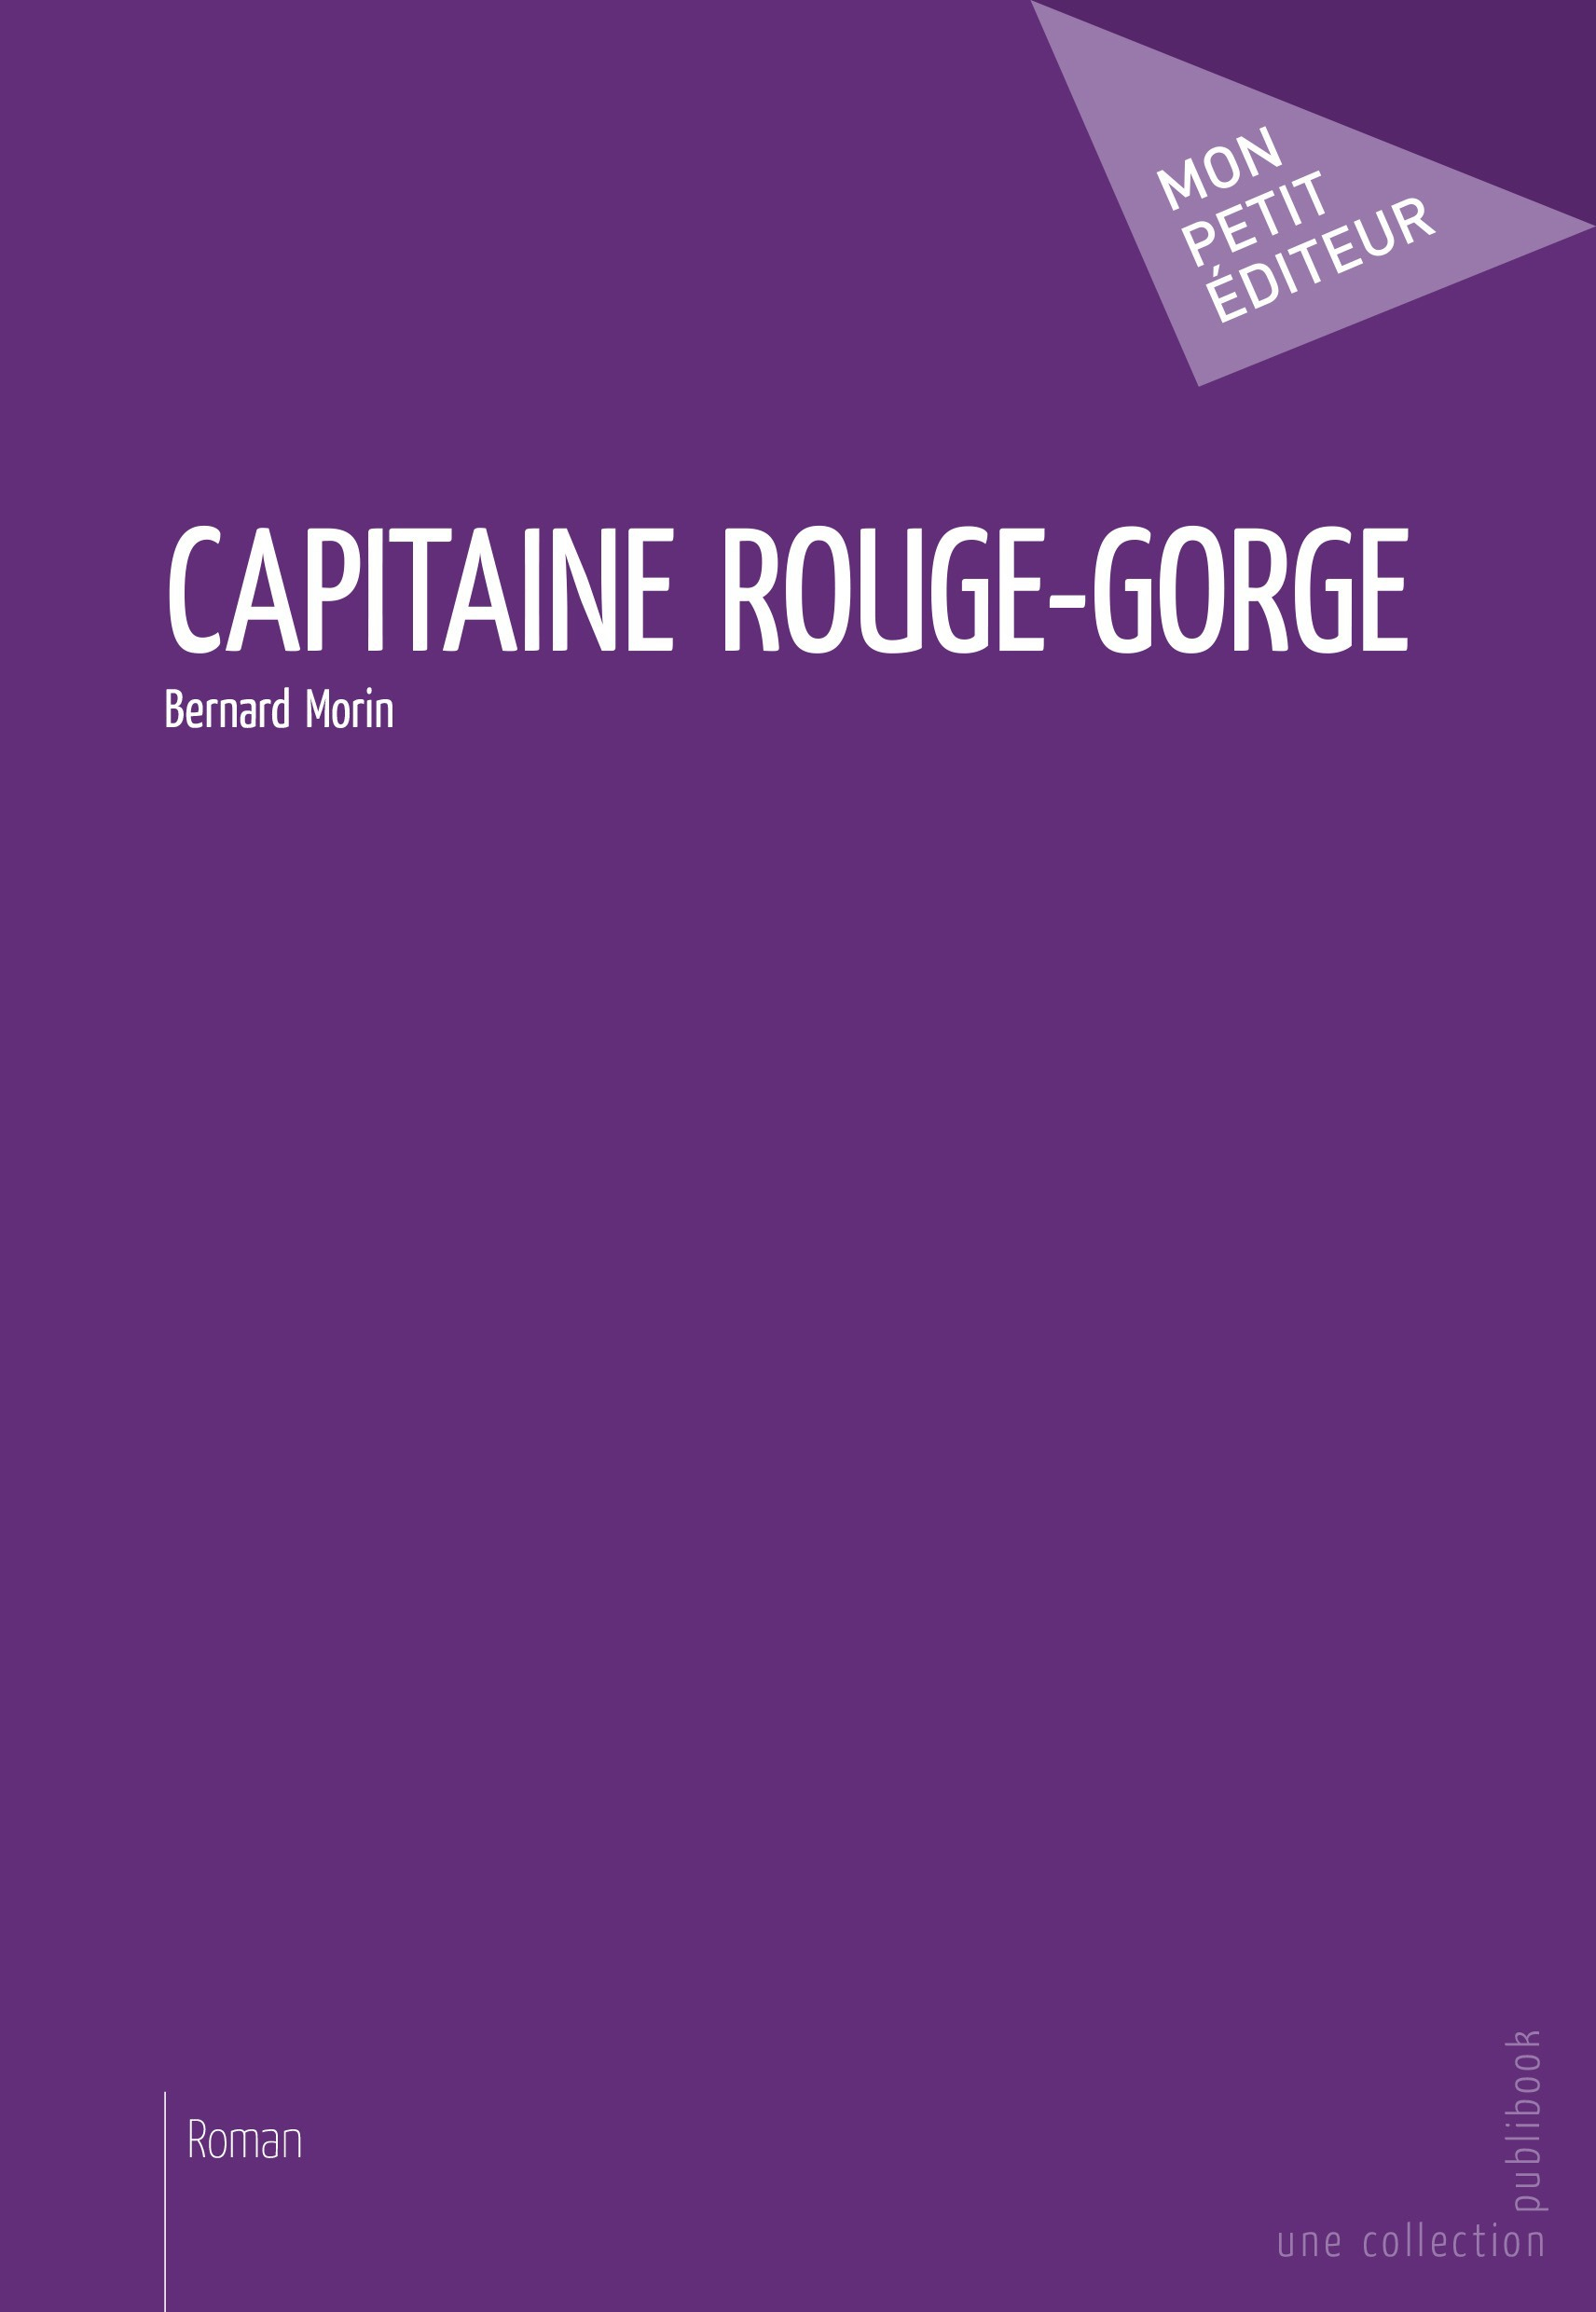 Capitaine rouge-gorge